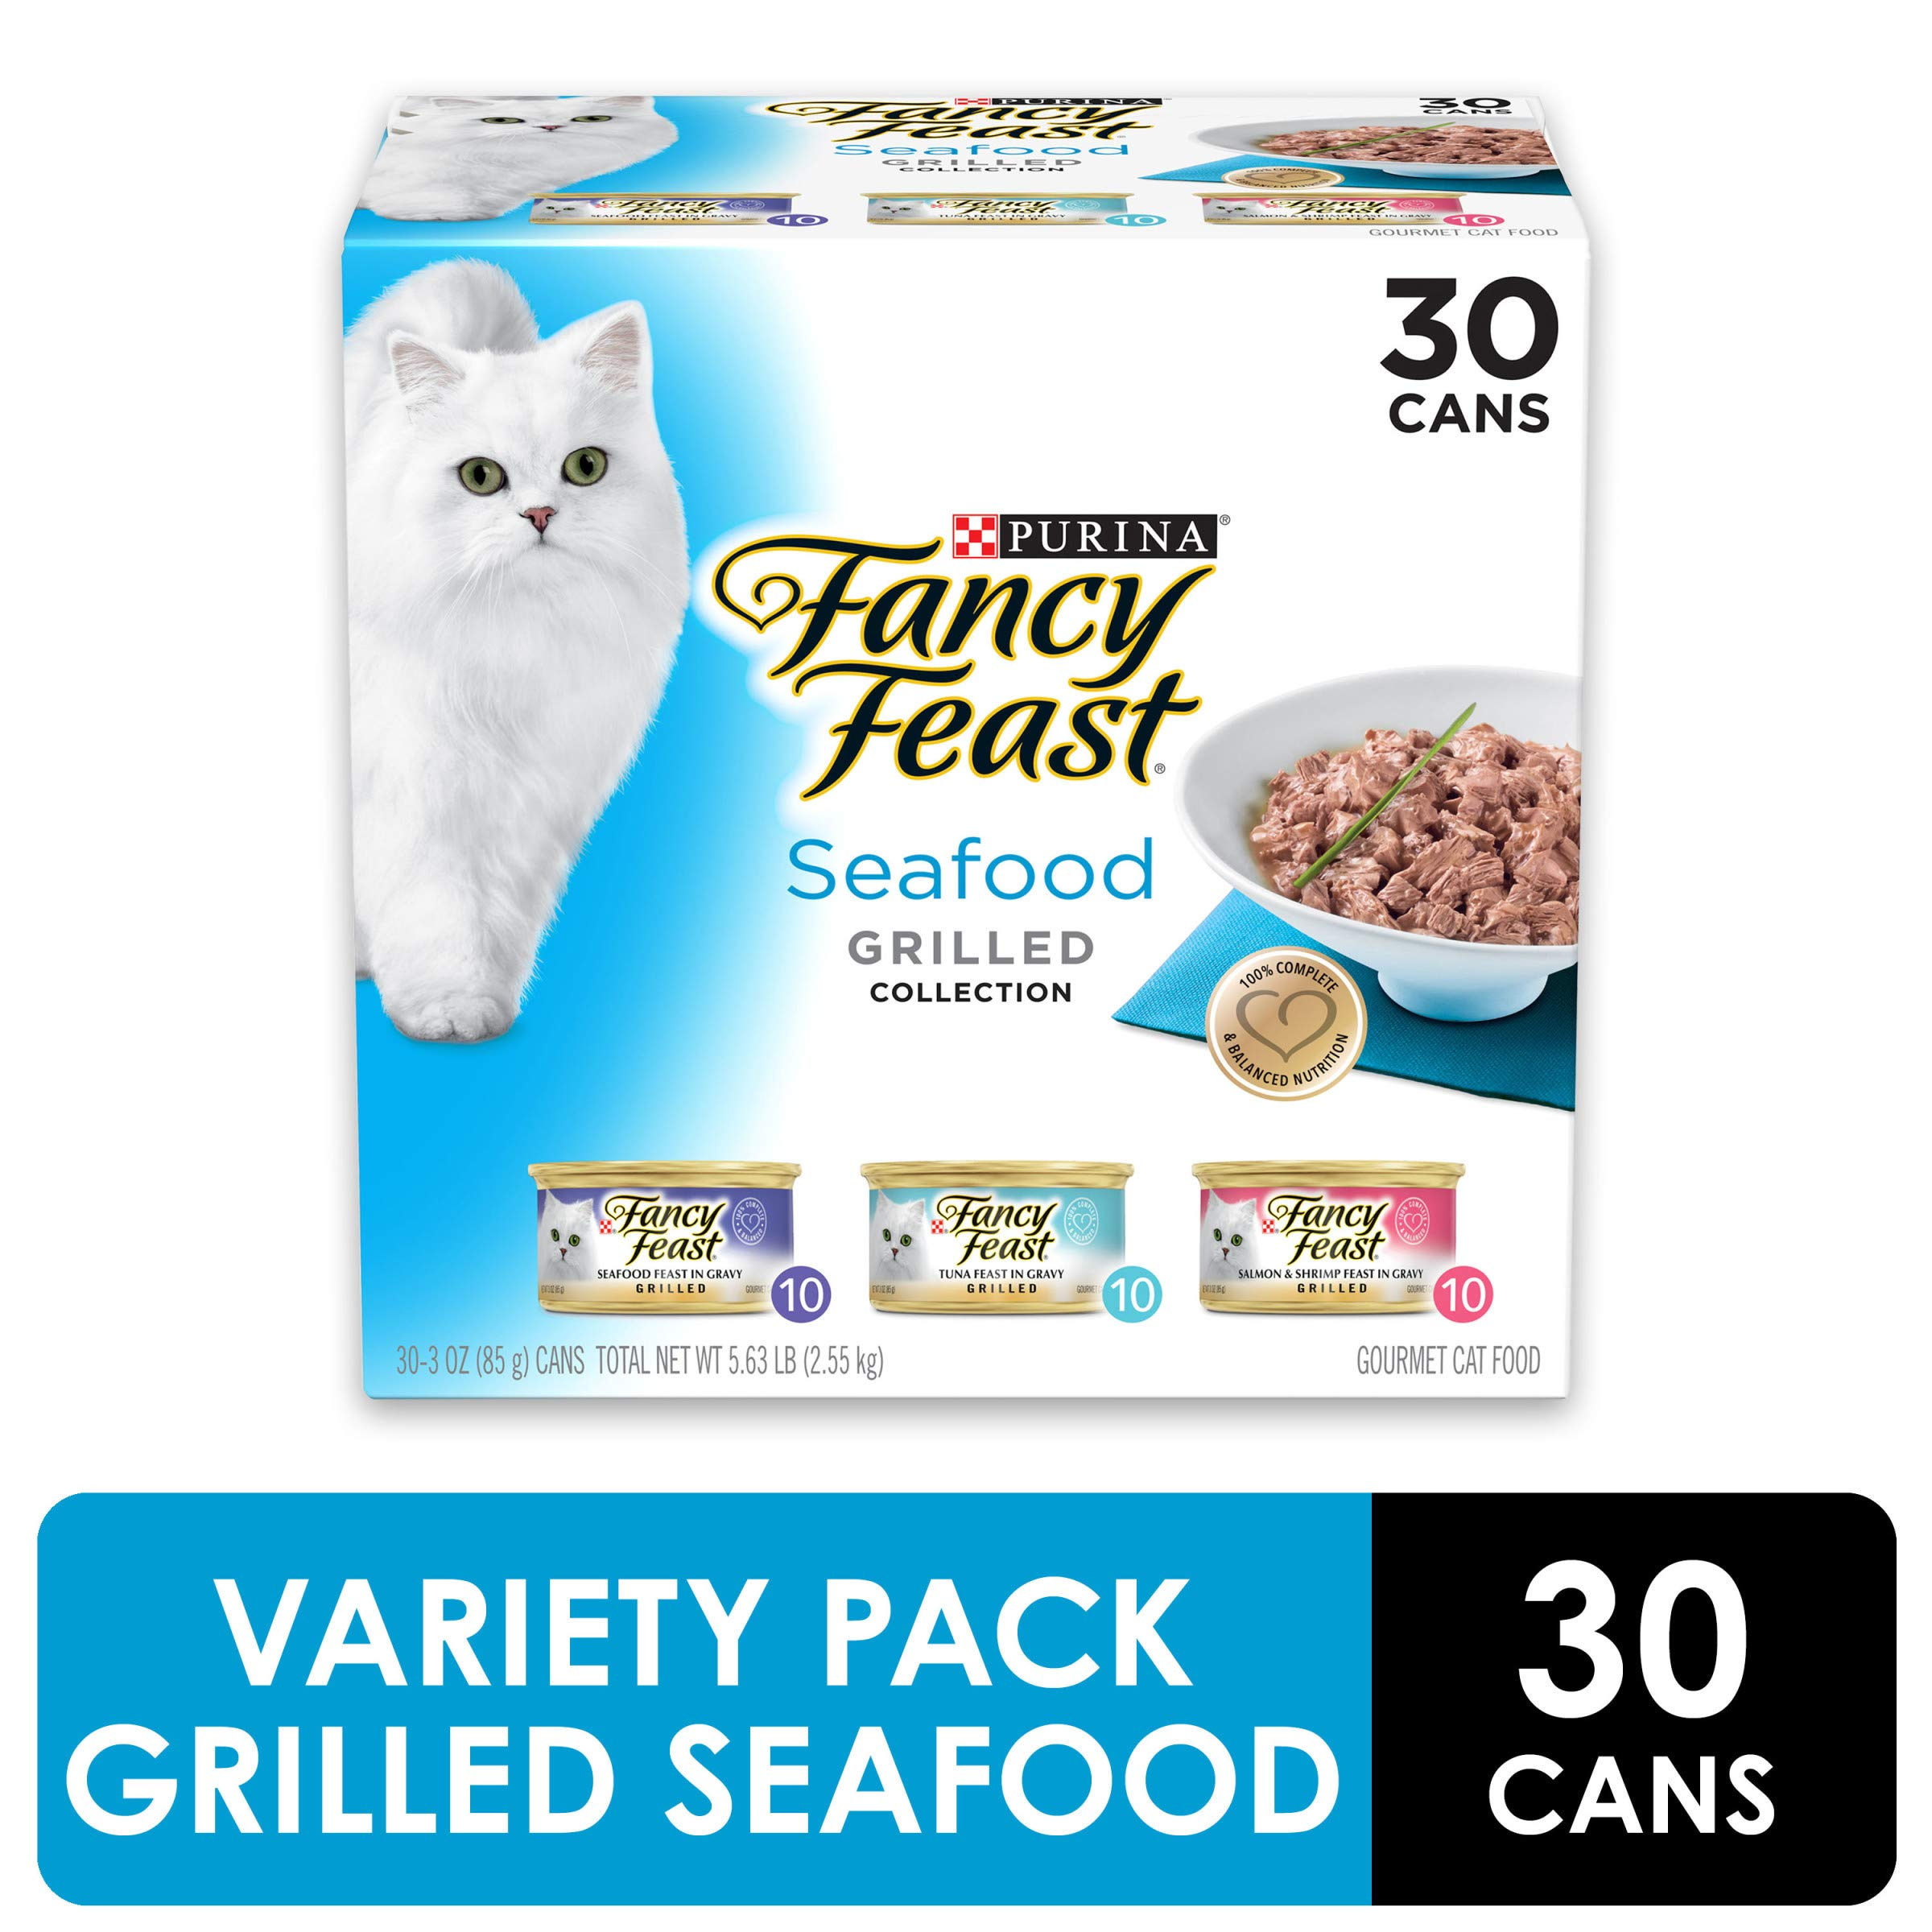 Purina Fancy Feast Gravy Wet Cat Food Variety Pack, Seafood Grilled Collection - (30) 3 oz. Cans by Purina Fancy Feast